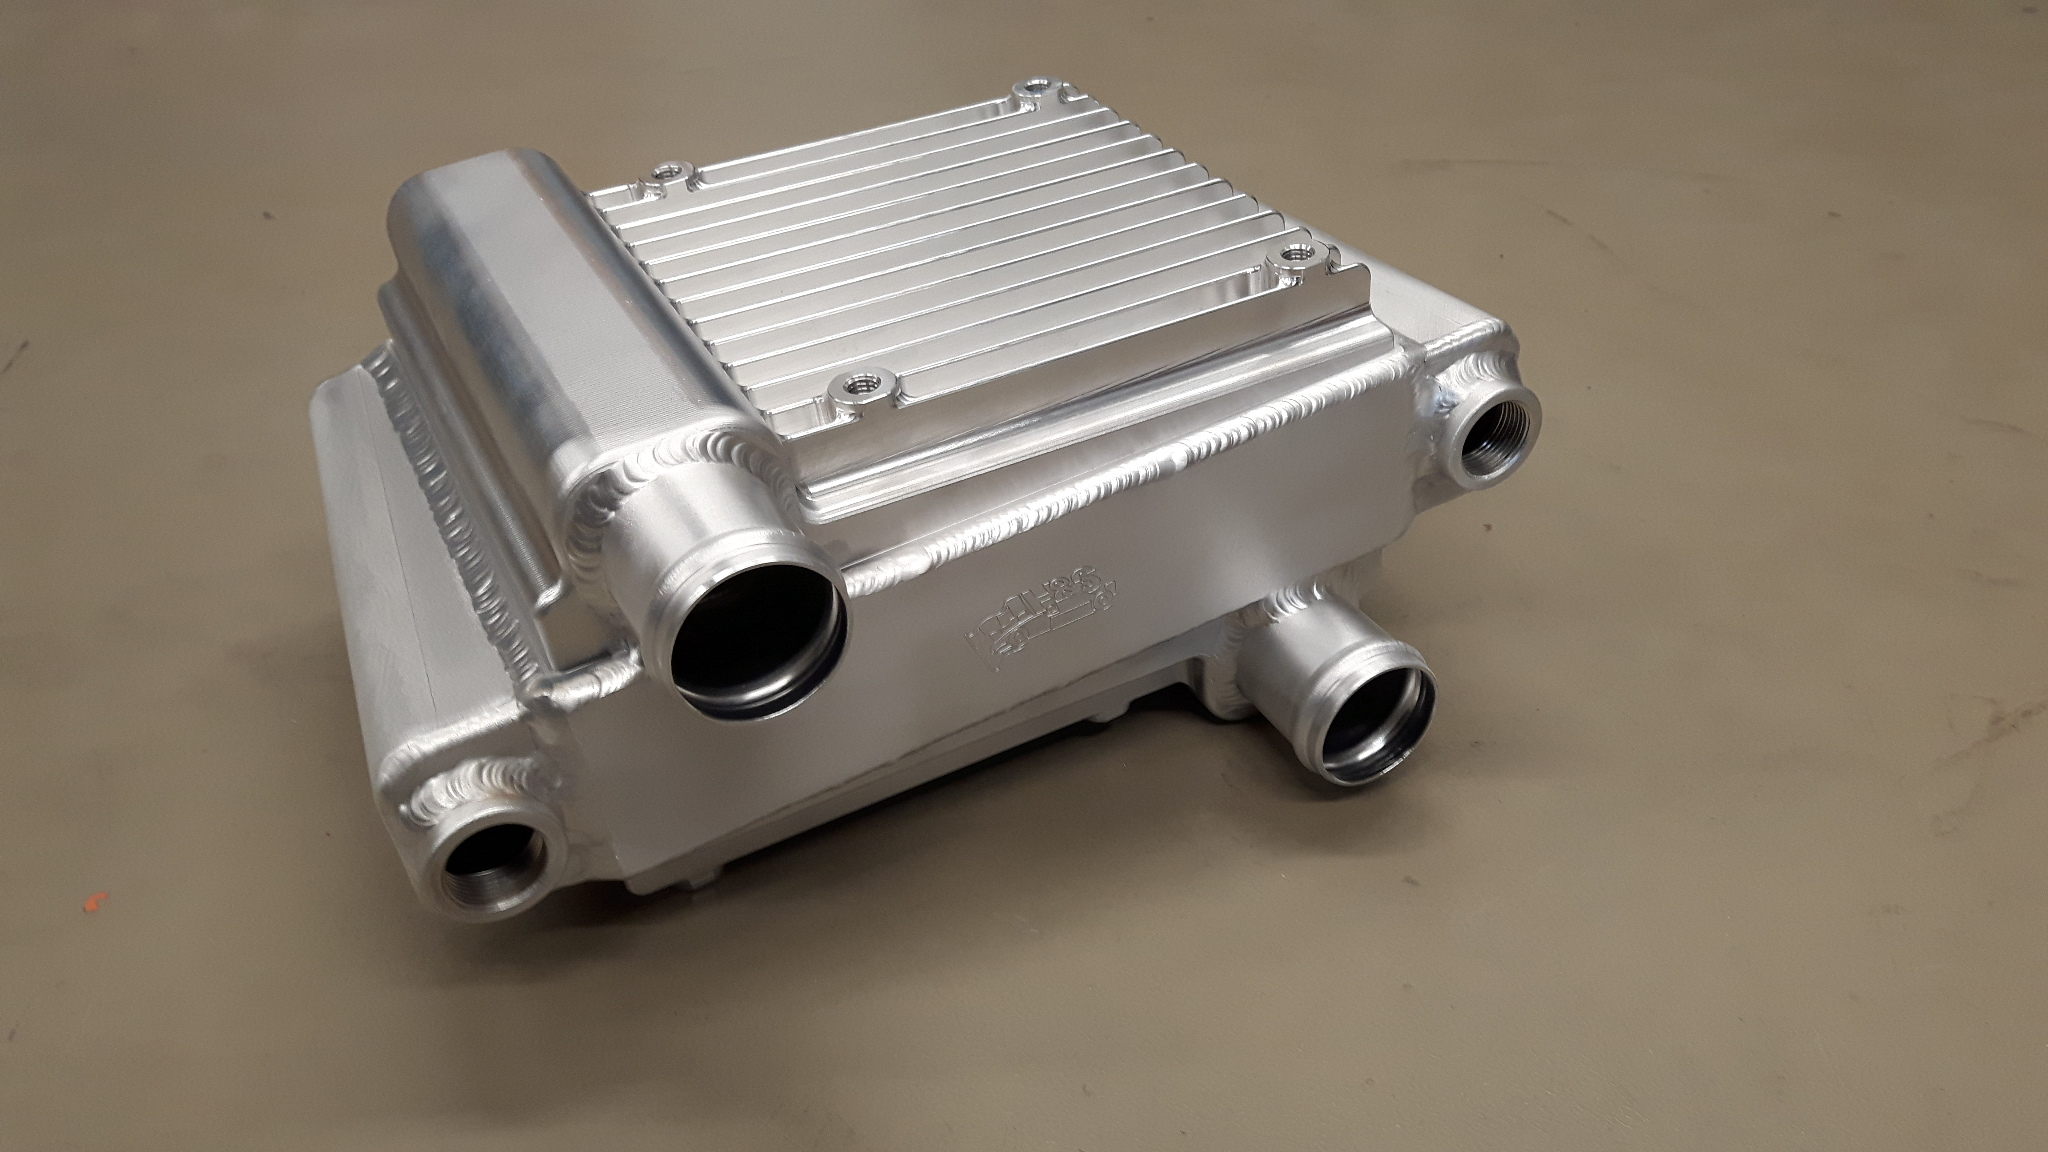 H&S Heat exchanger high performance with PWR core.-0